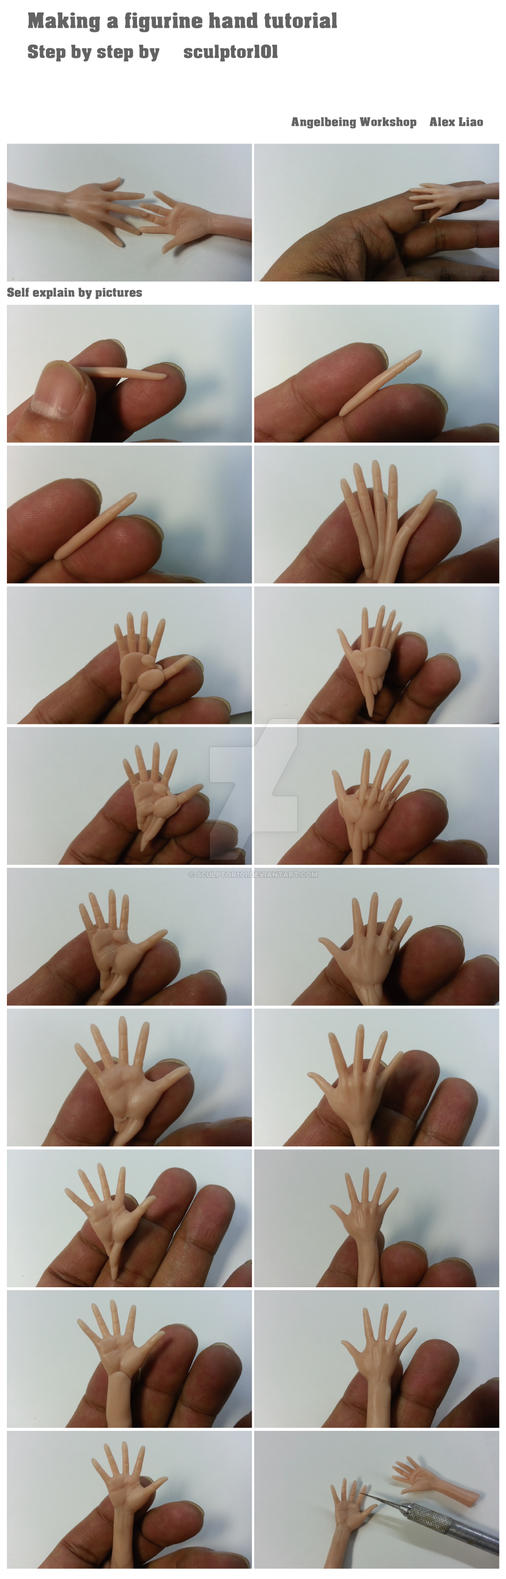 Making a figurine hand tutorial part I by sculptor101